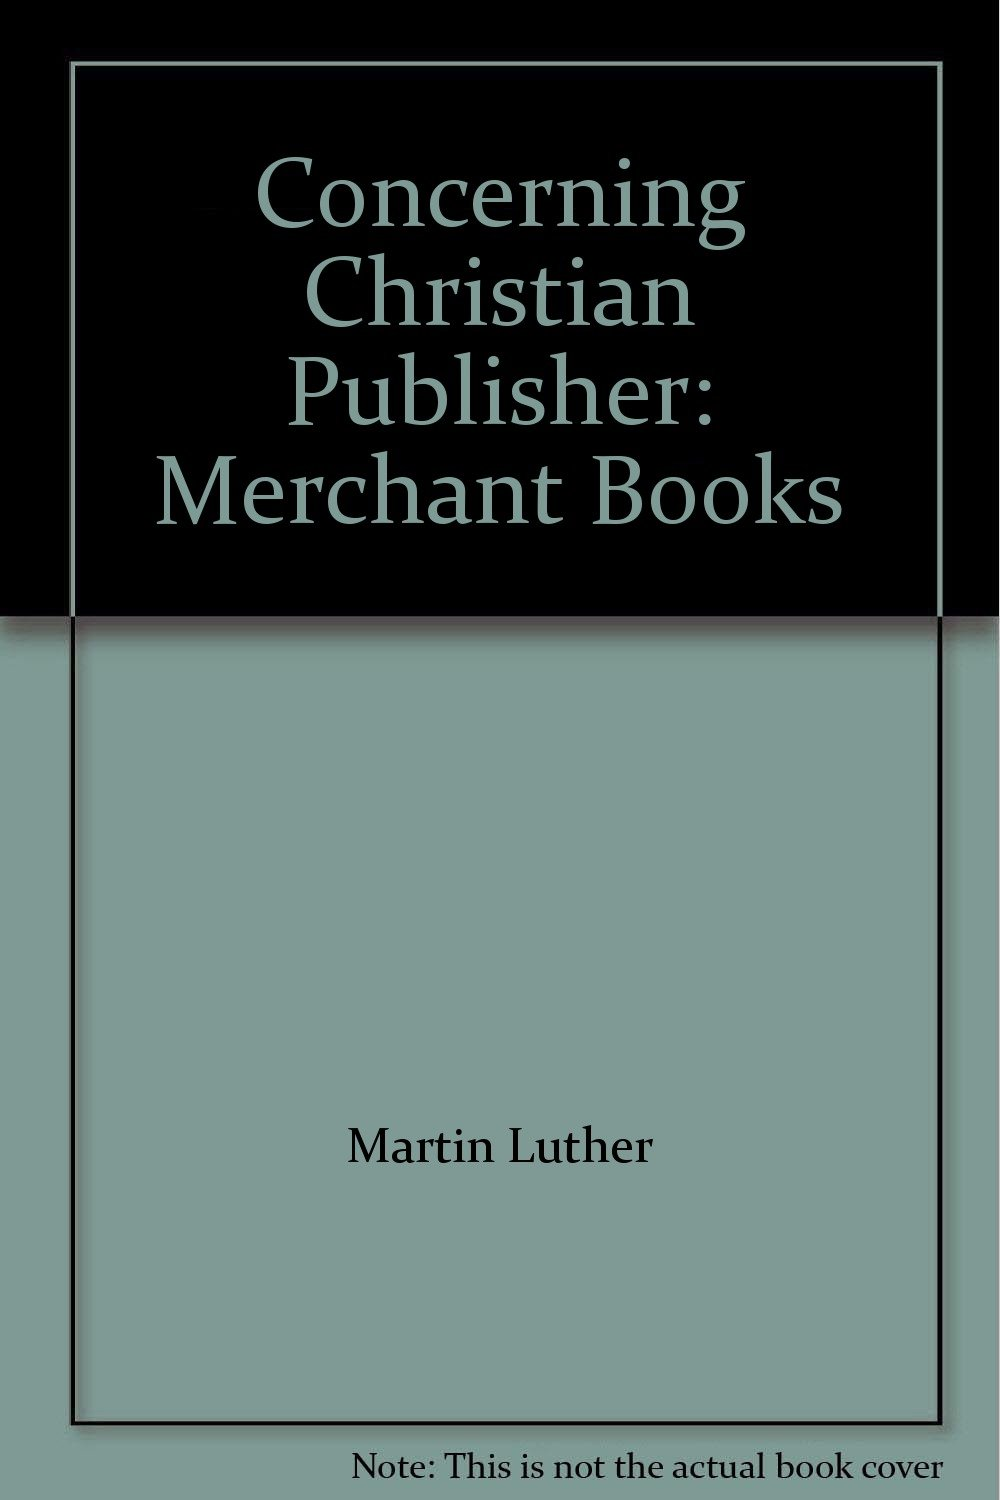 Download Concerning Christian Publisher: Merchant Books ePub fb2 book